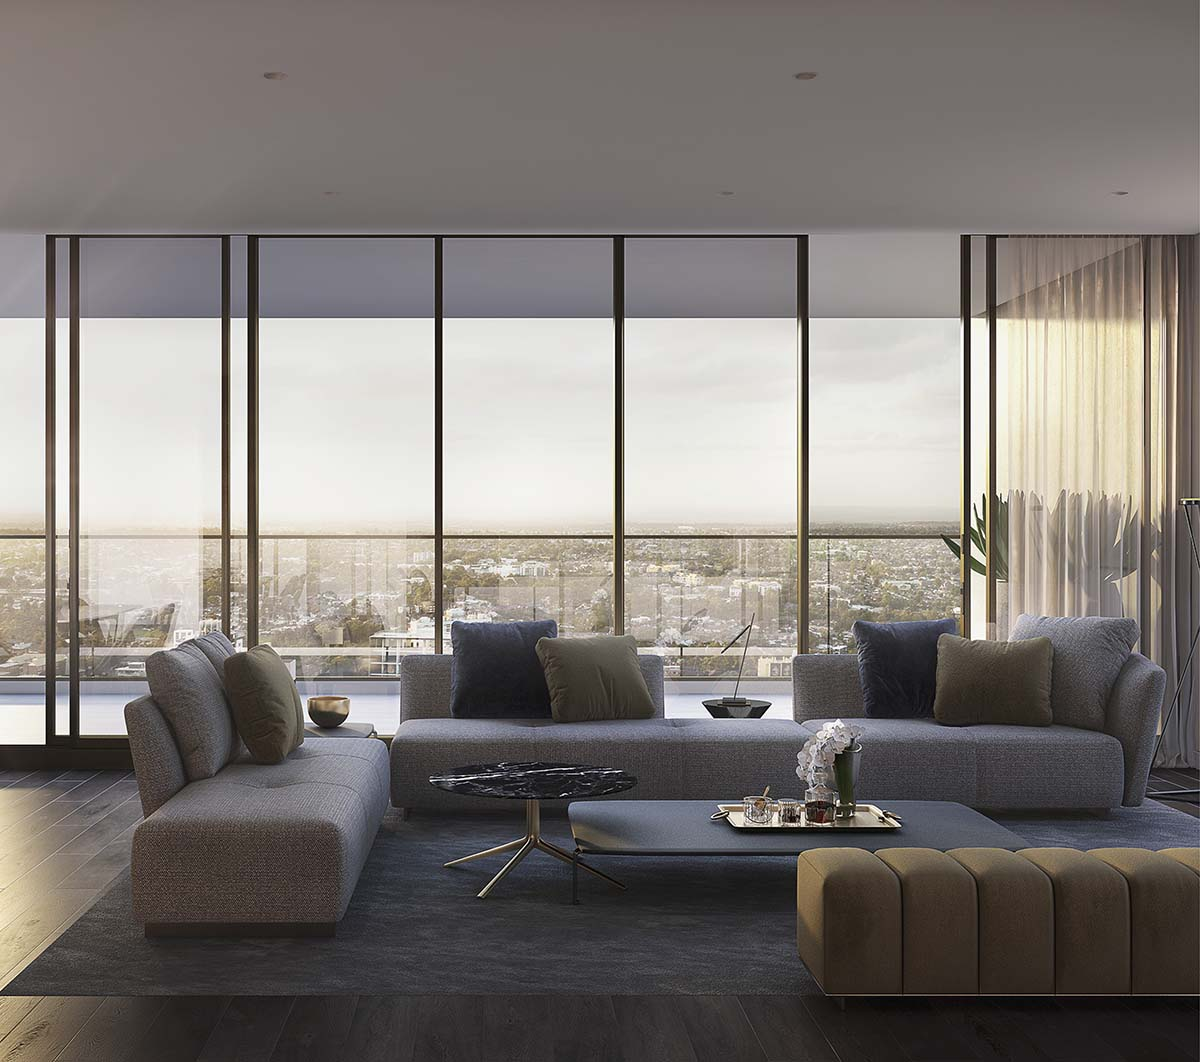 living room with couches and balcony with wall glasses